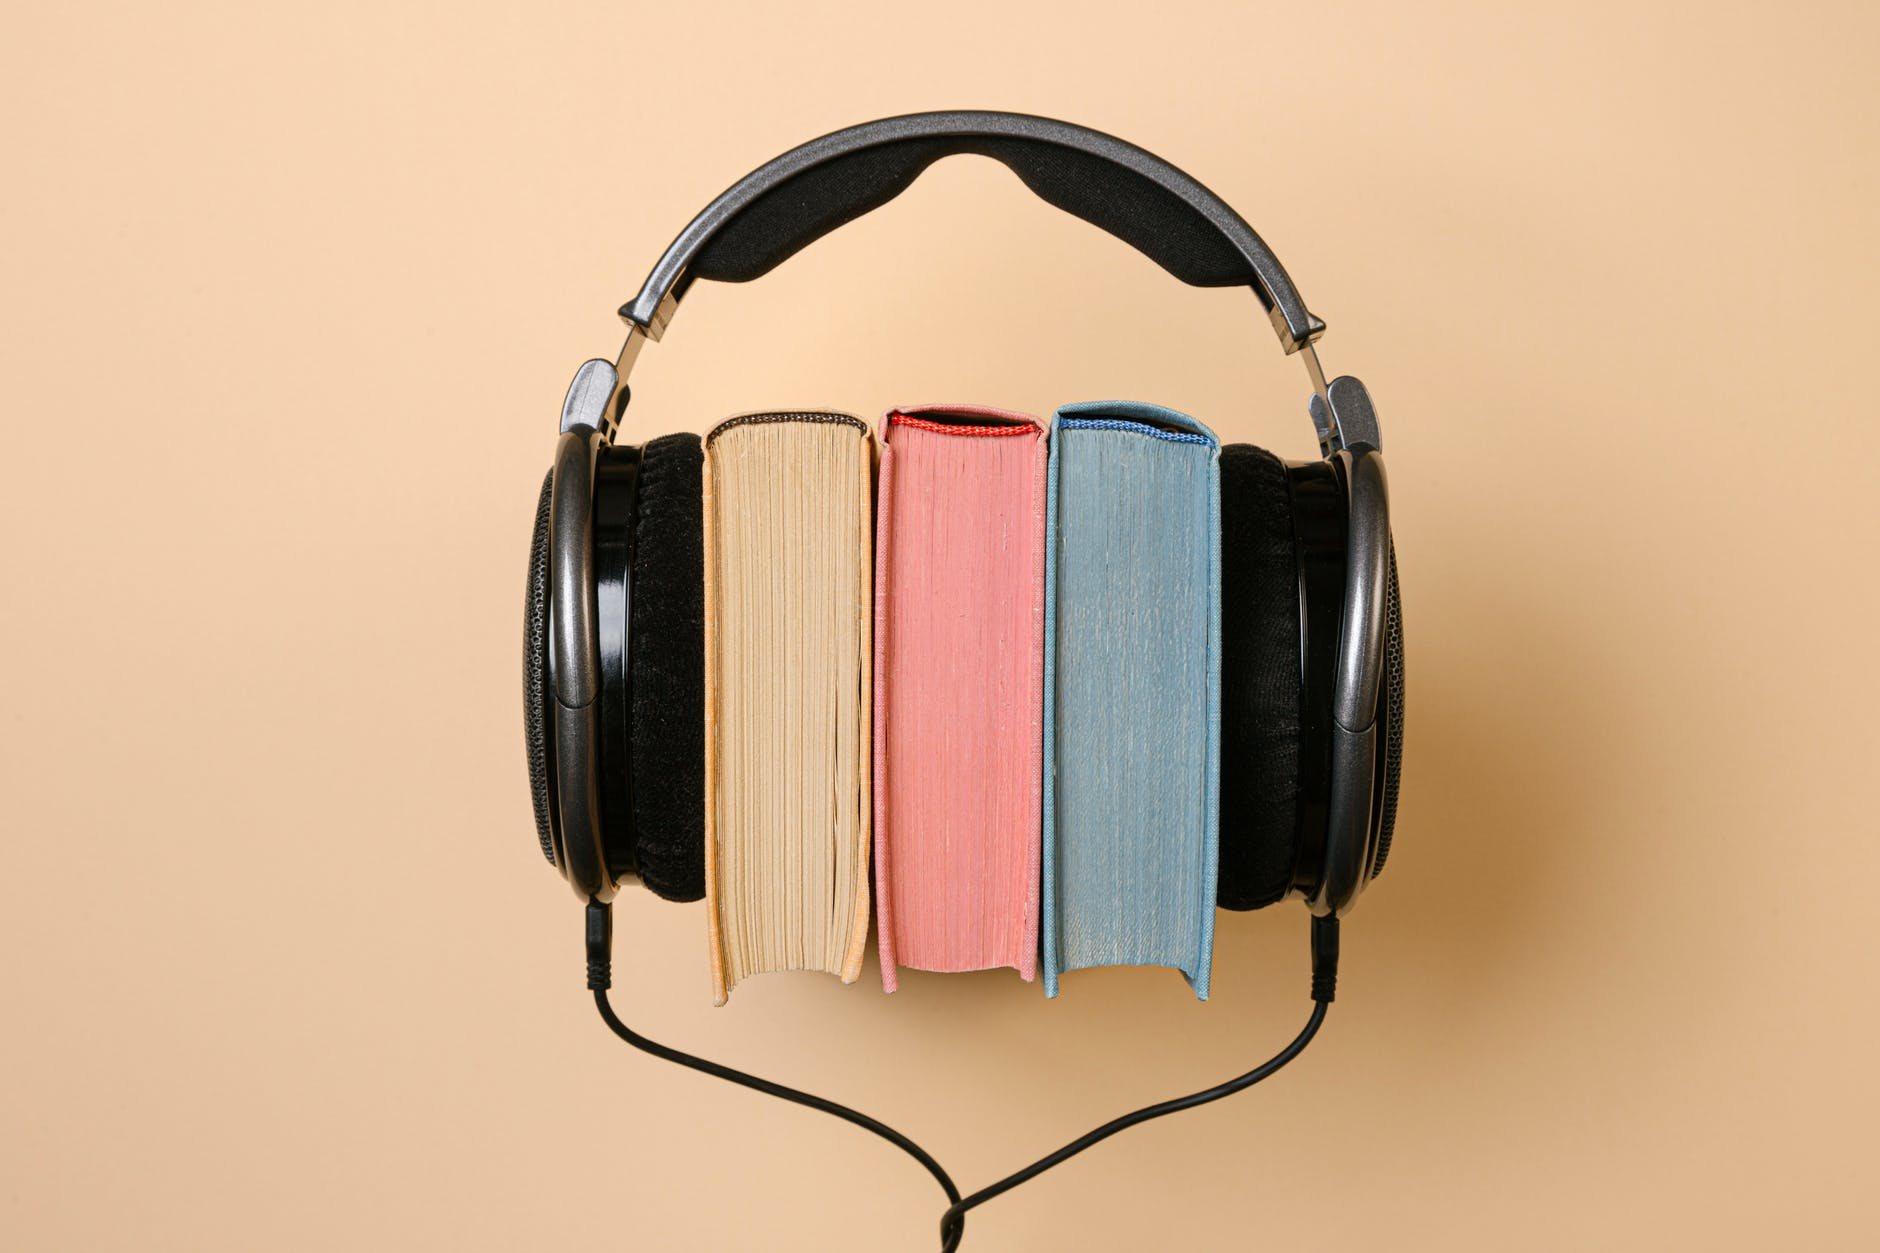 Books and Headphones photo by Stas Knop at pexels